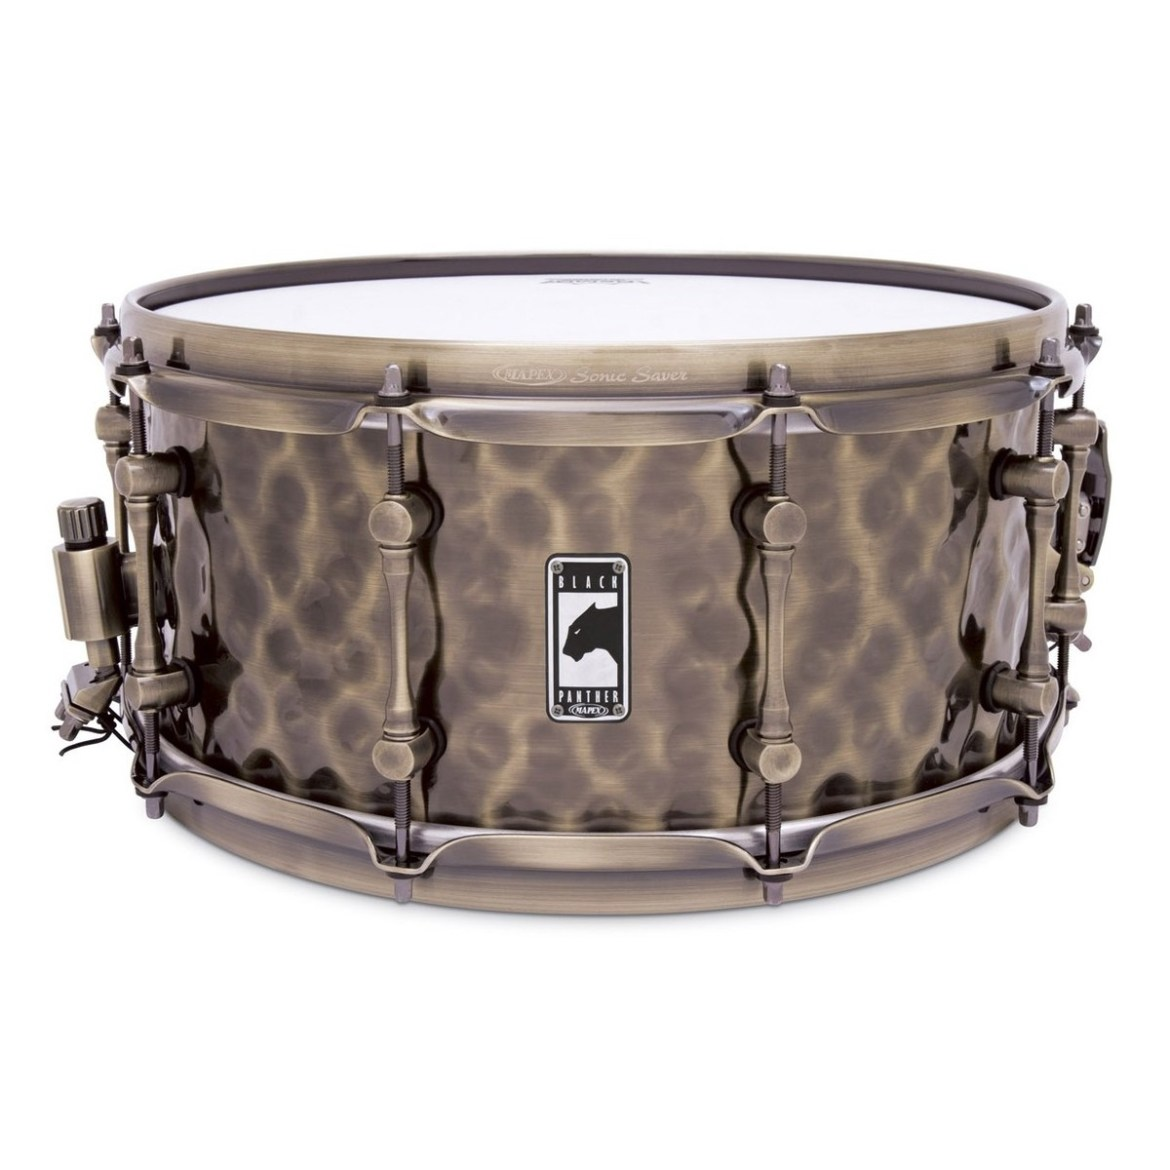 Mapex Black Panther The Sledge Hammer 14x6.5 Hammered Brass Snare